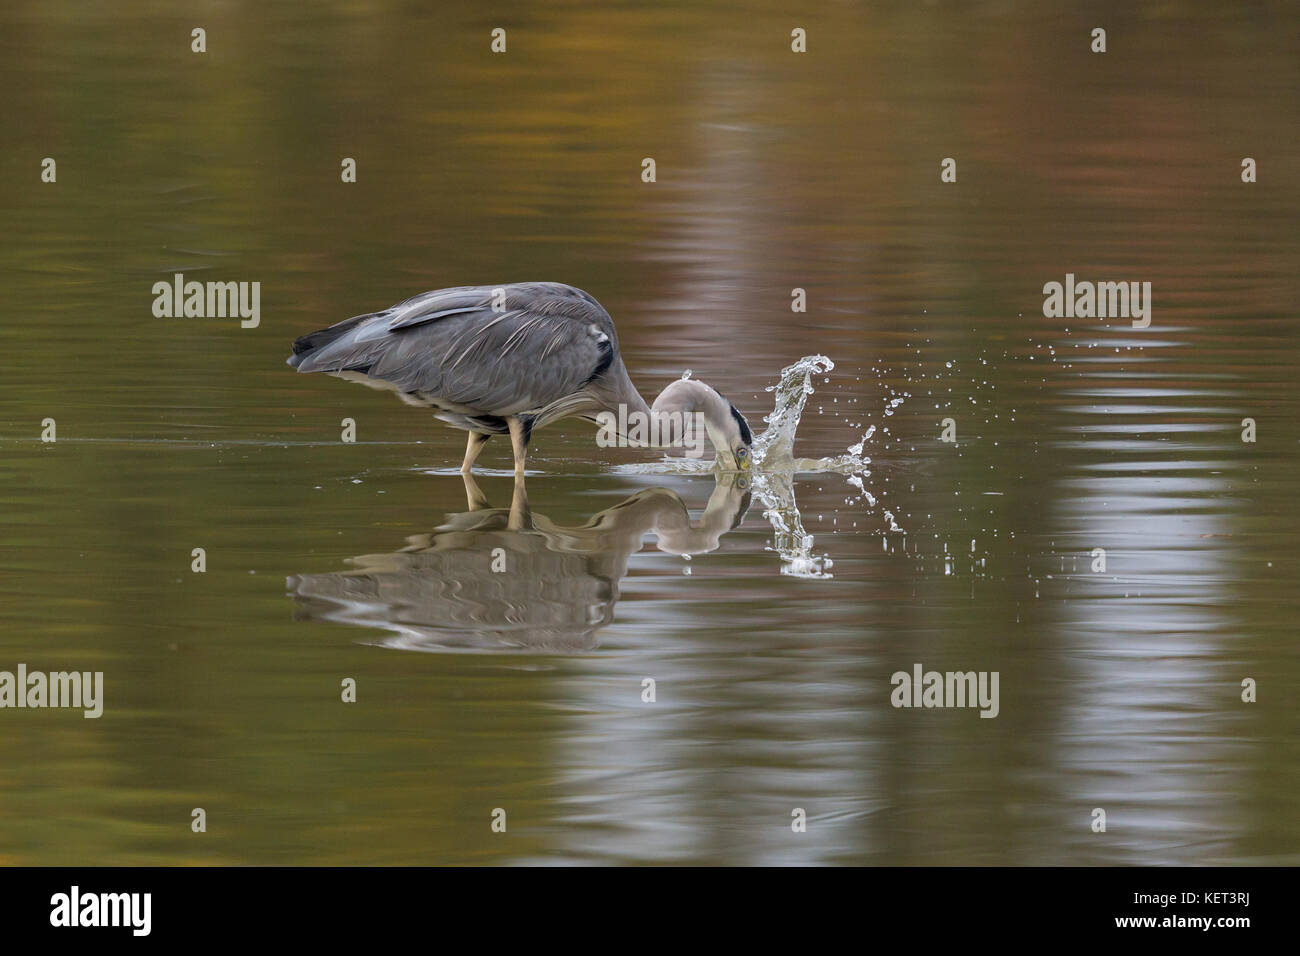 portrait of natural gray heron (ardea cinerea) standing and hunting in water - Stock Image